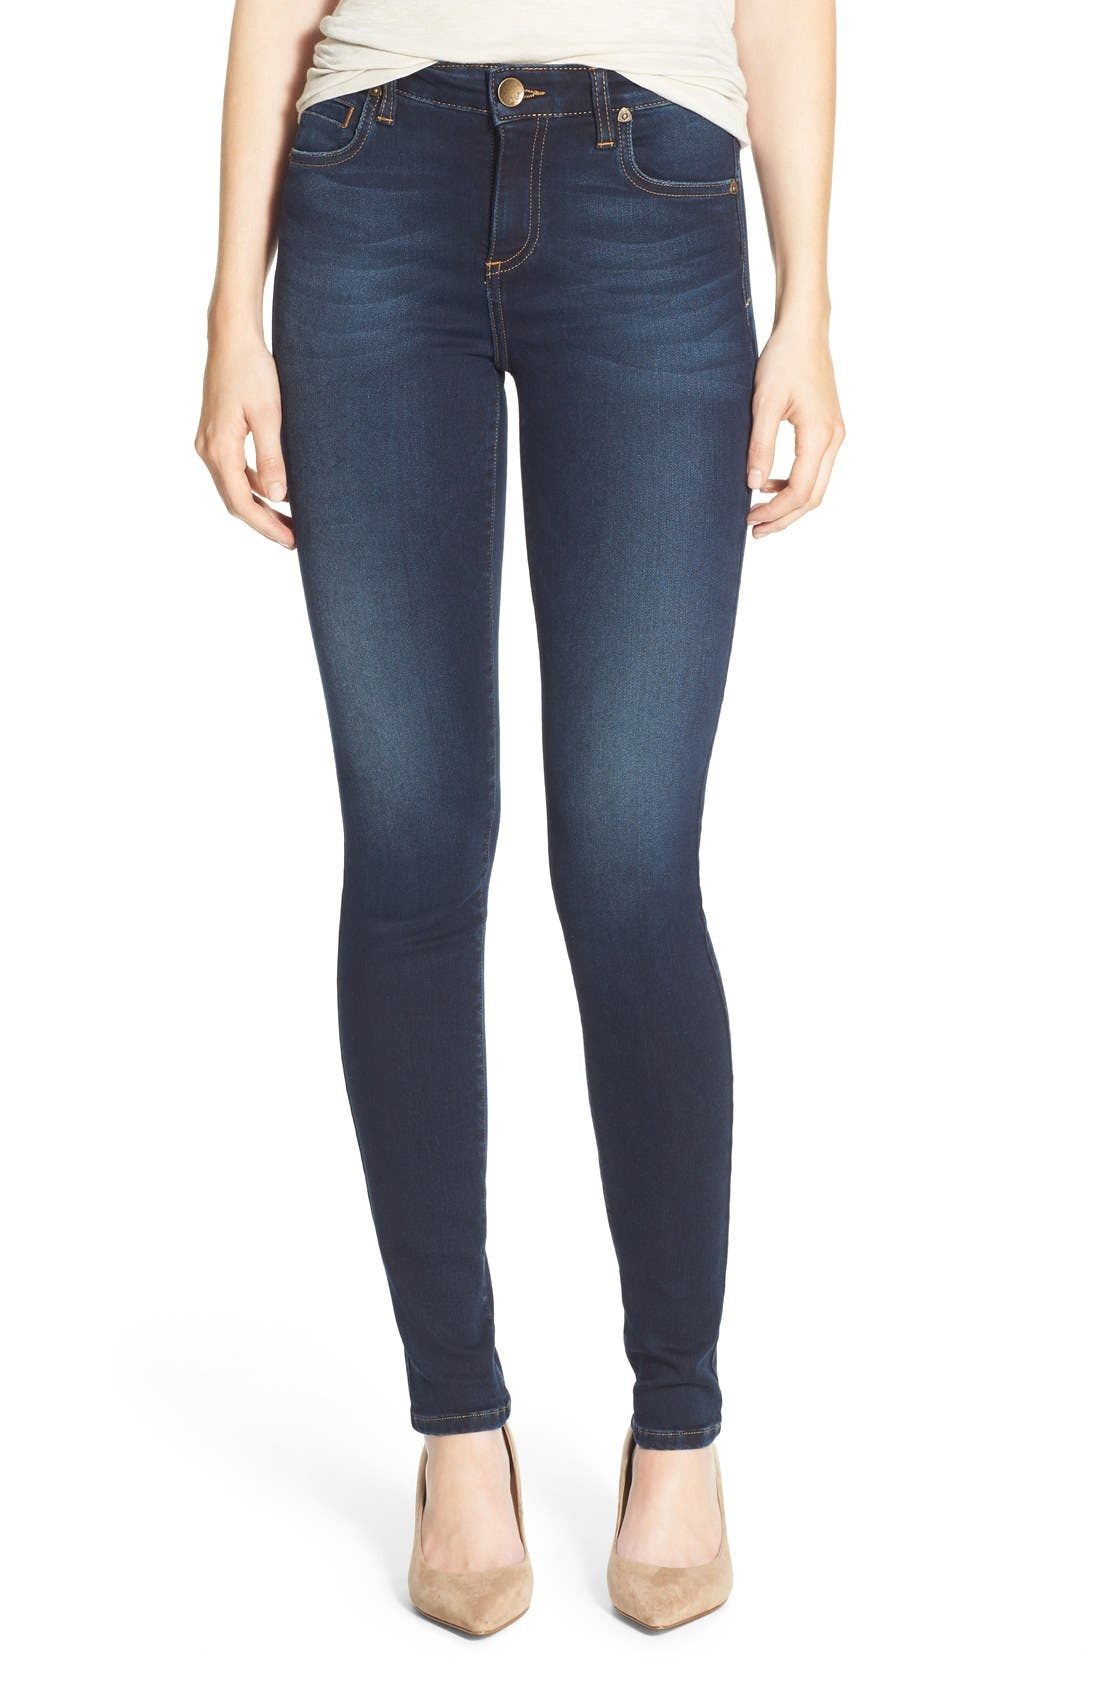 Alternate Image 1 Selected - KUT from the Kloth 'Diana' Stretch Skinny Jeans (Brisk)